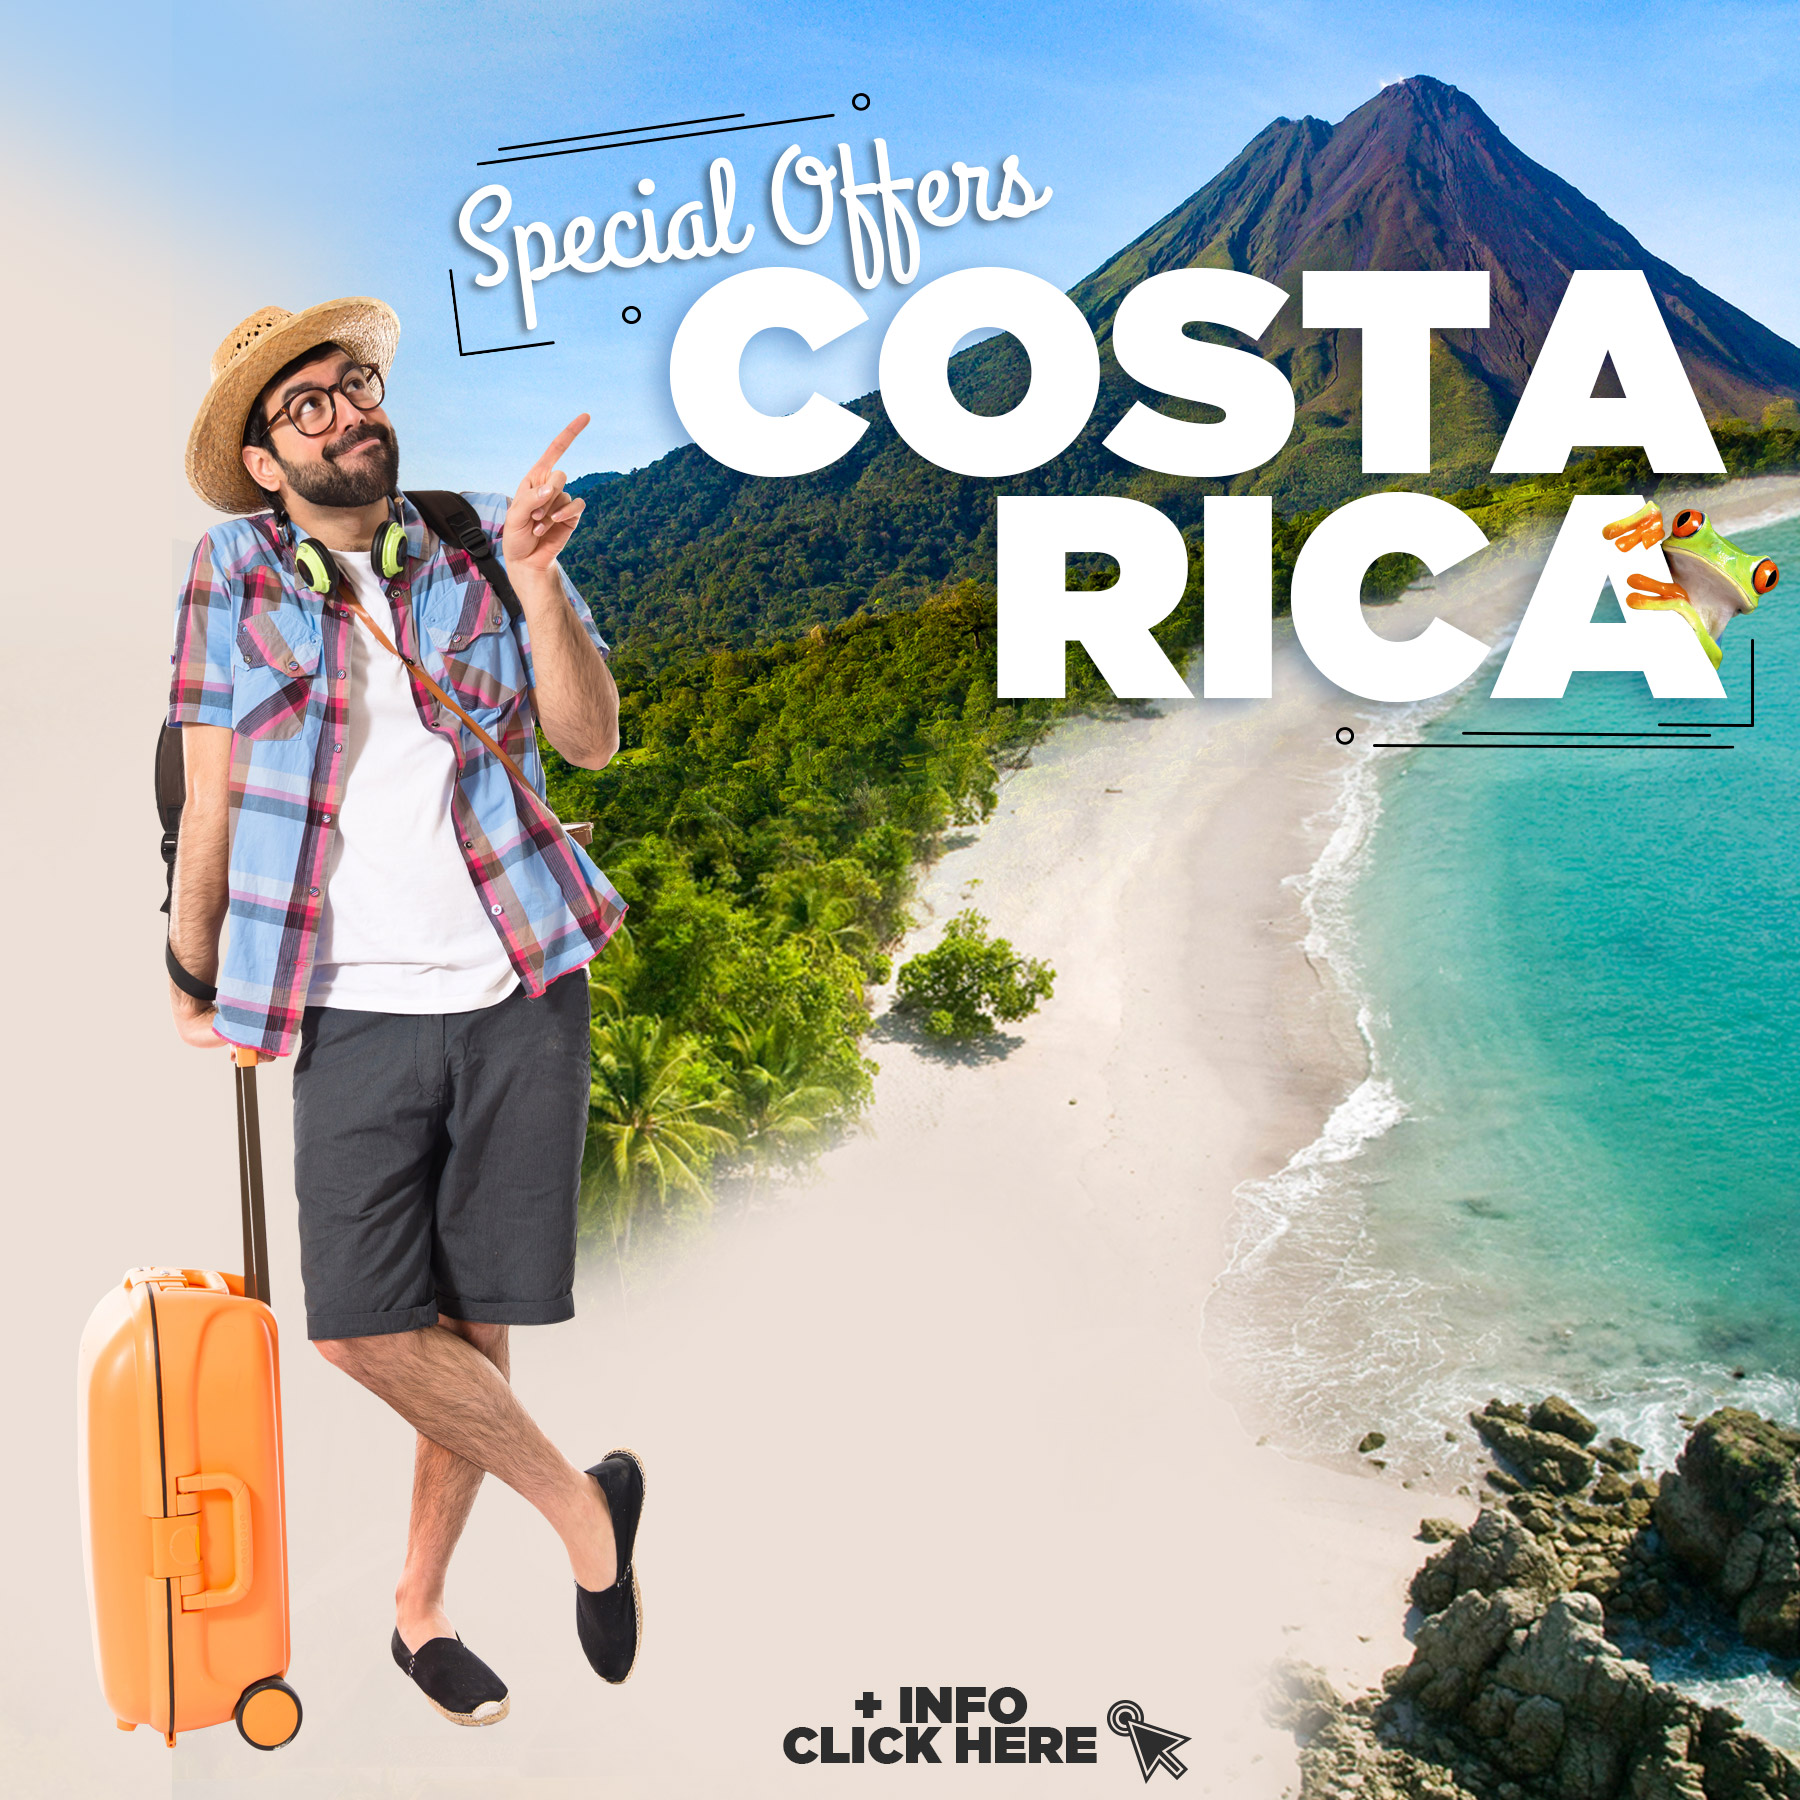 Special offers Vacations Costa Rica